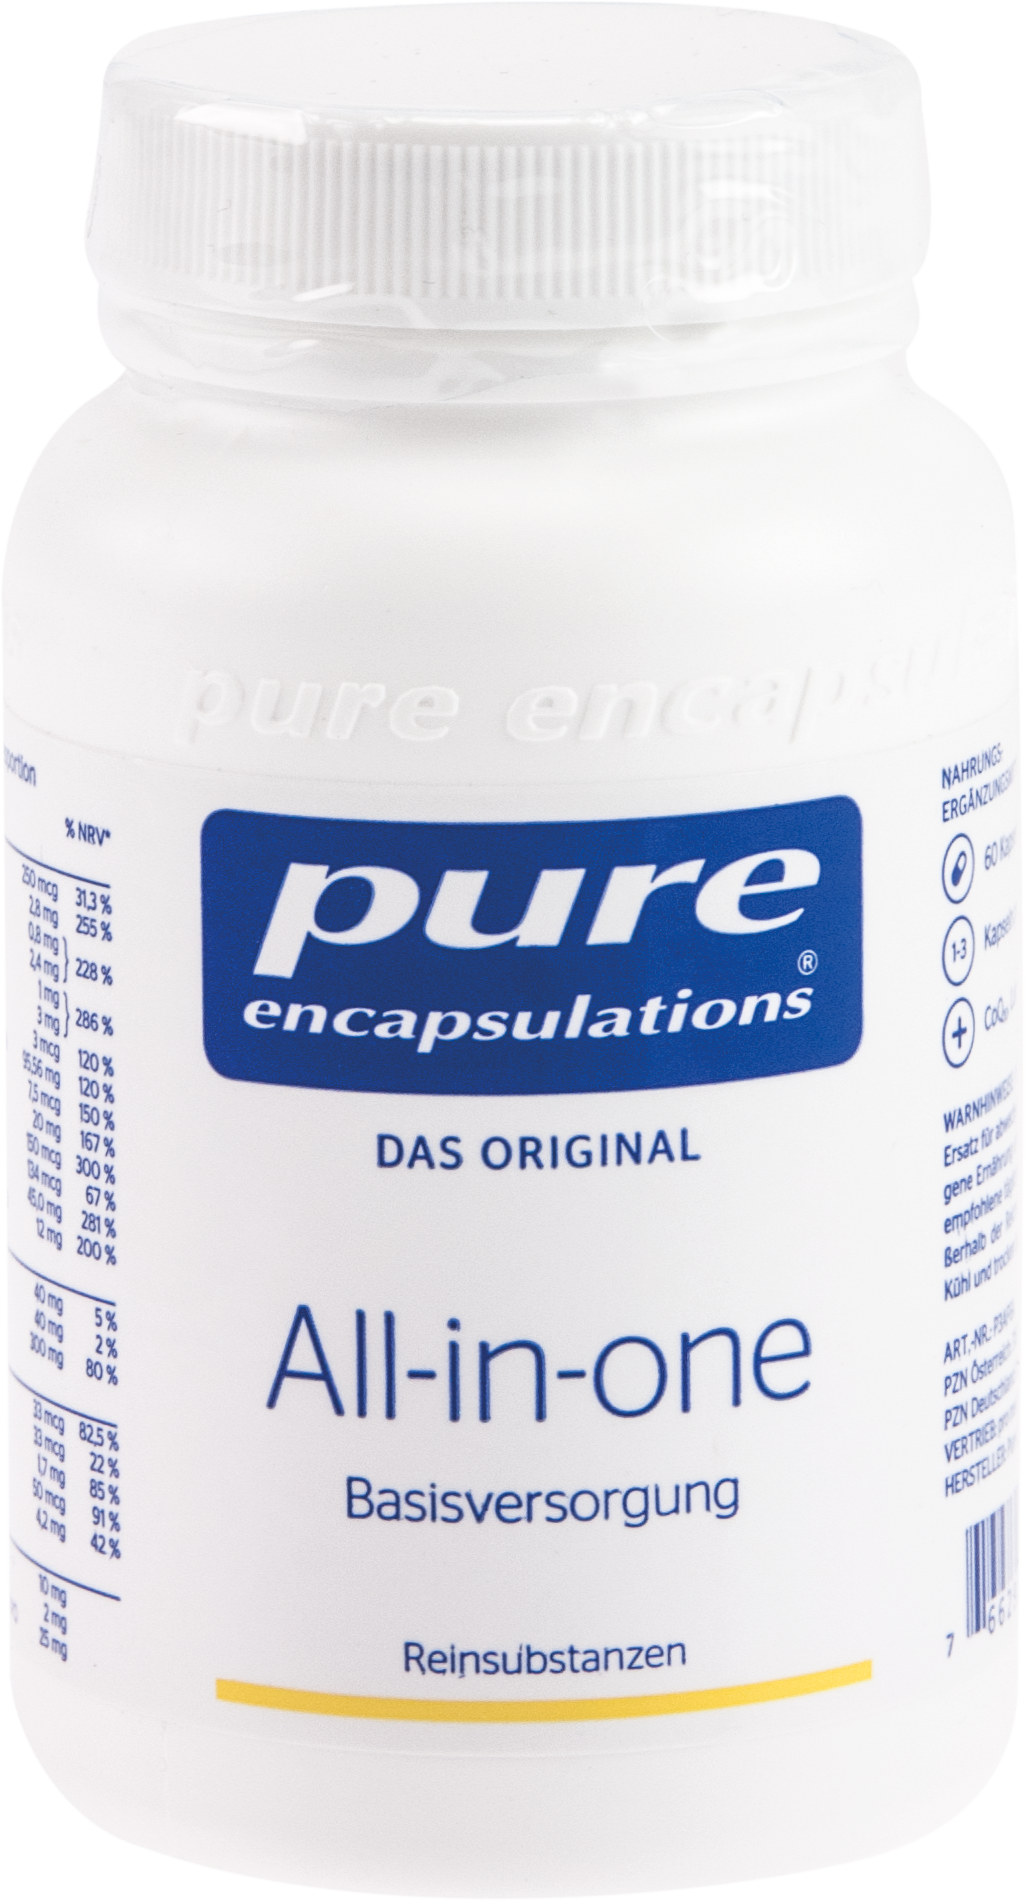 PURE ENCAPSULATIONS ALL-IN-ONE Pure 365